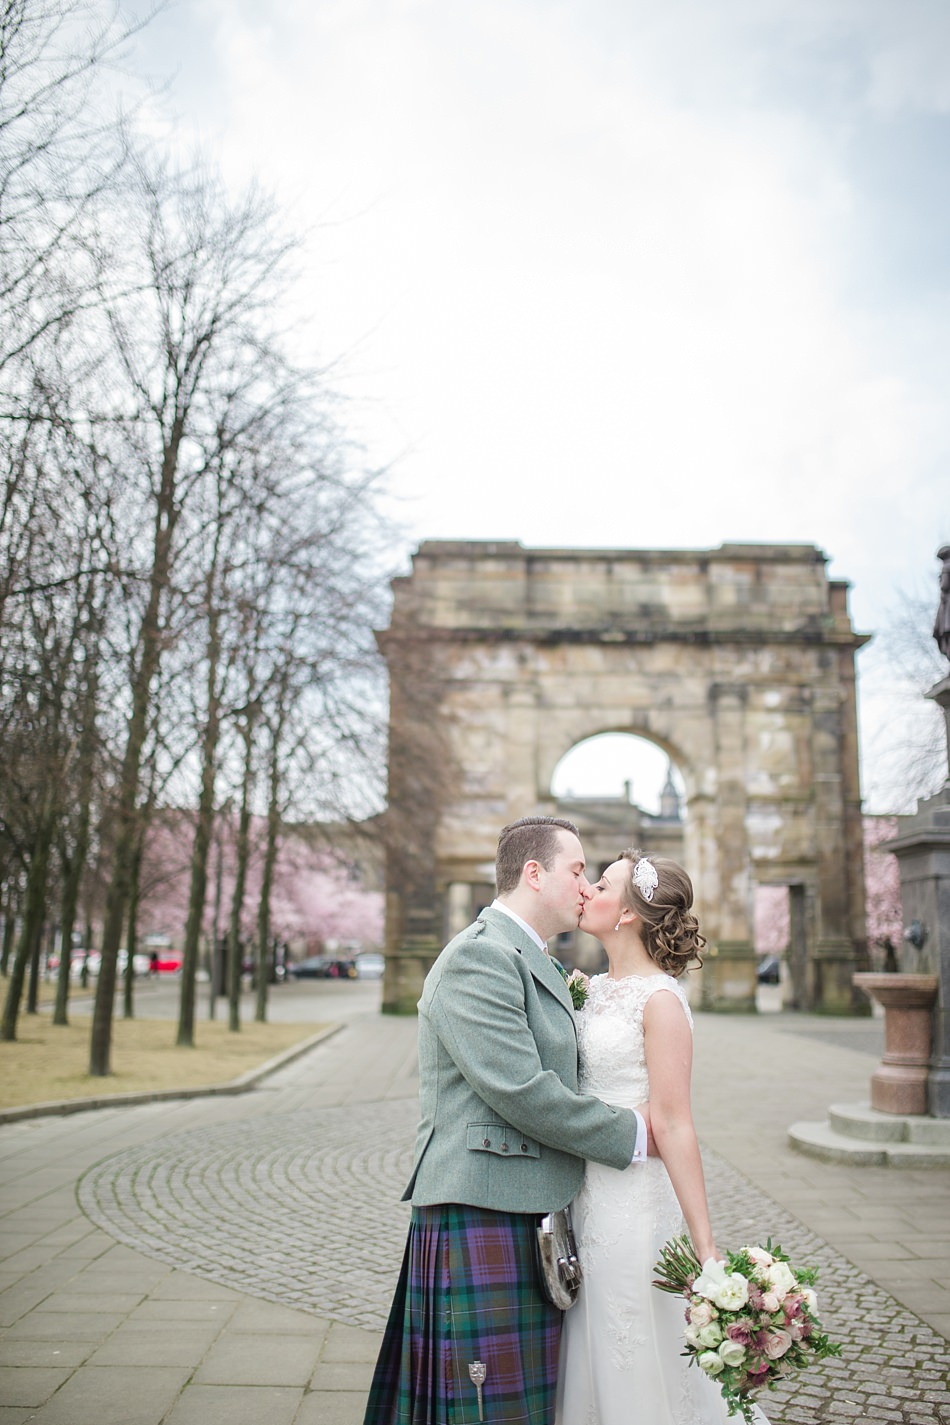 fine art wedding photographers glasgow scotland 8-8.jpg